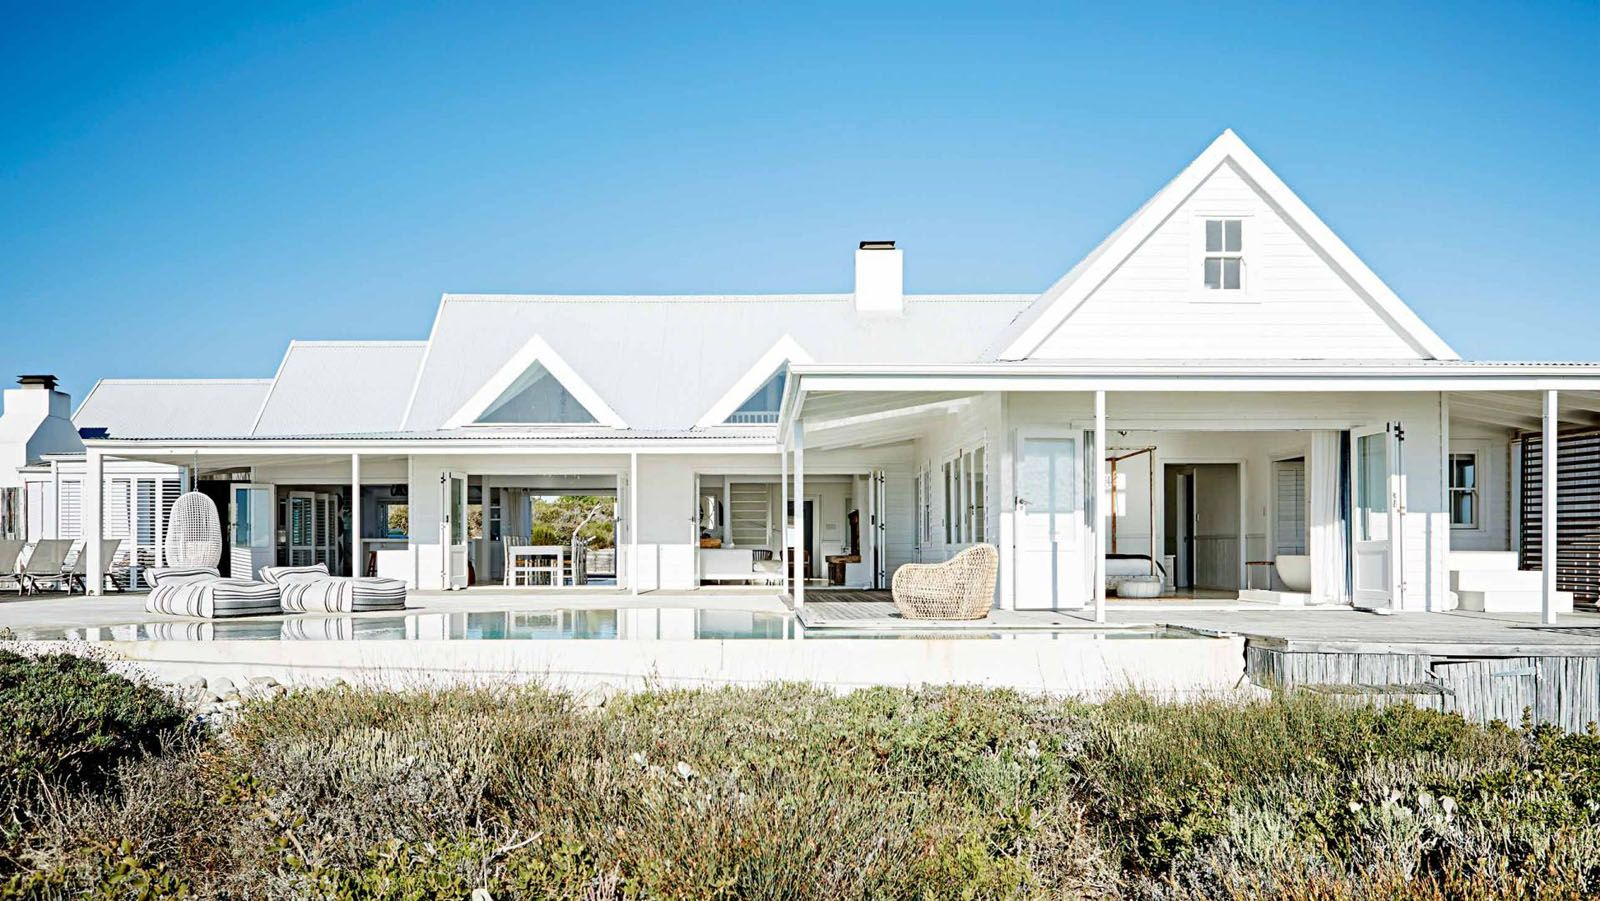 South-Africa-Contemporary-Beach-House_1   Lux   Pinterest ...